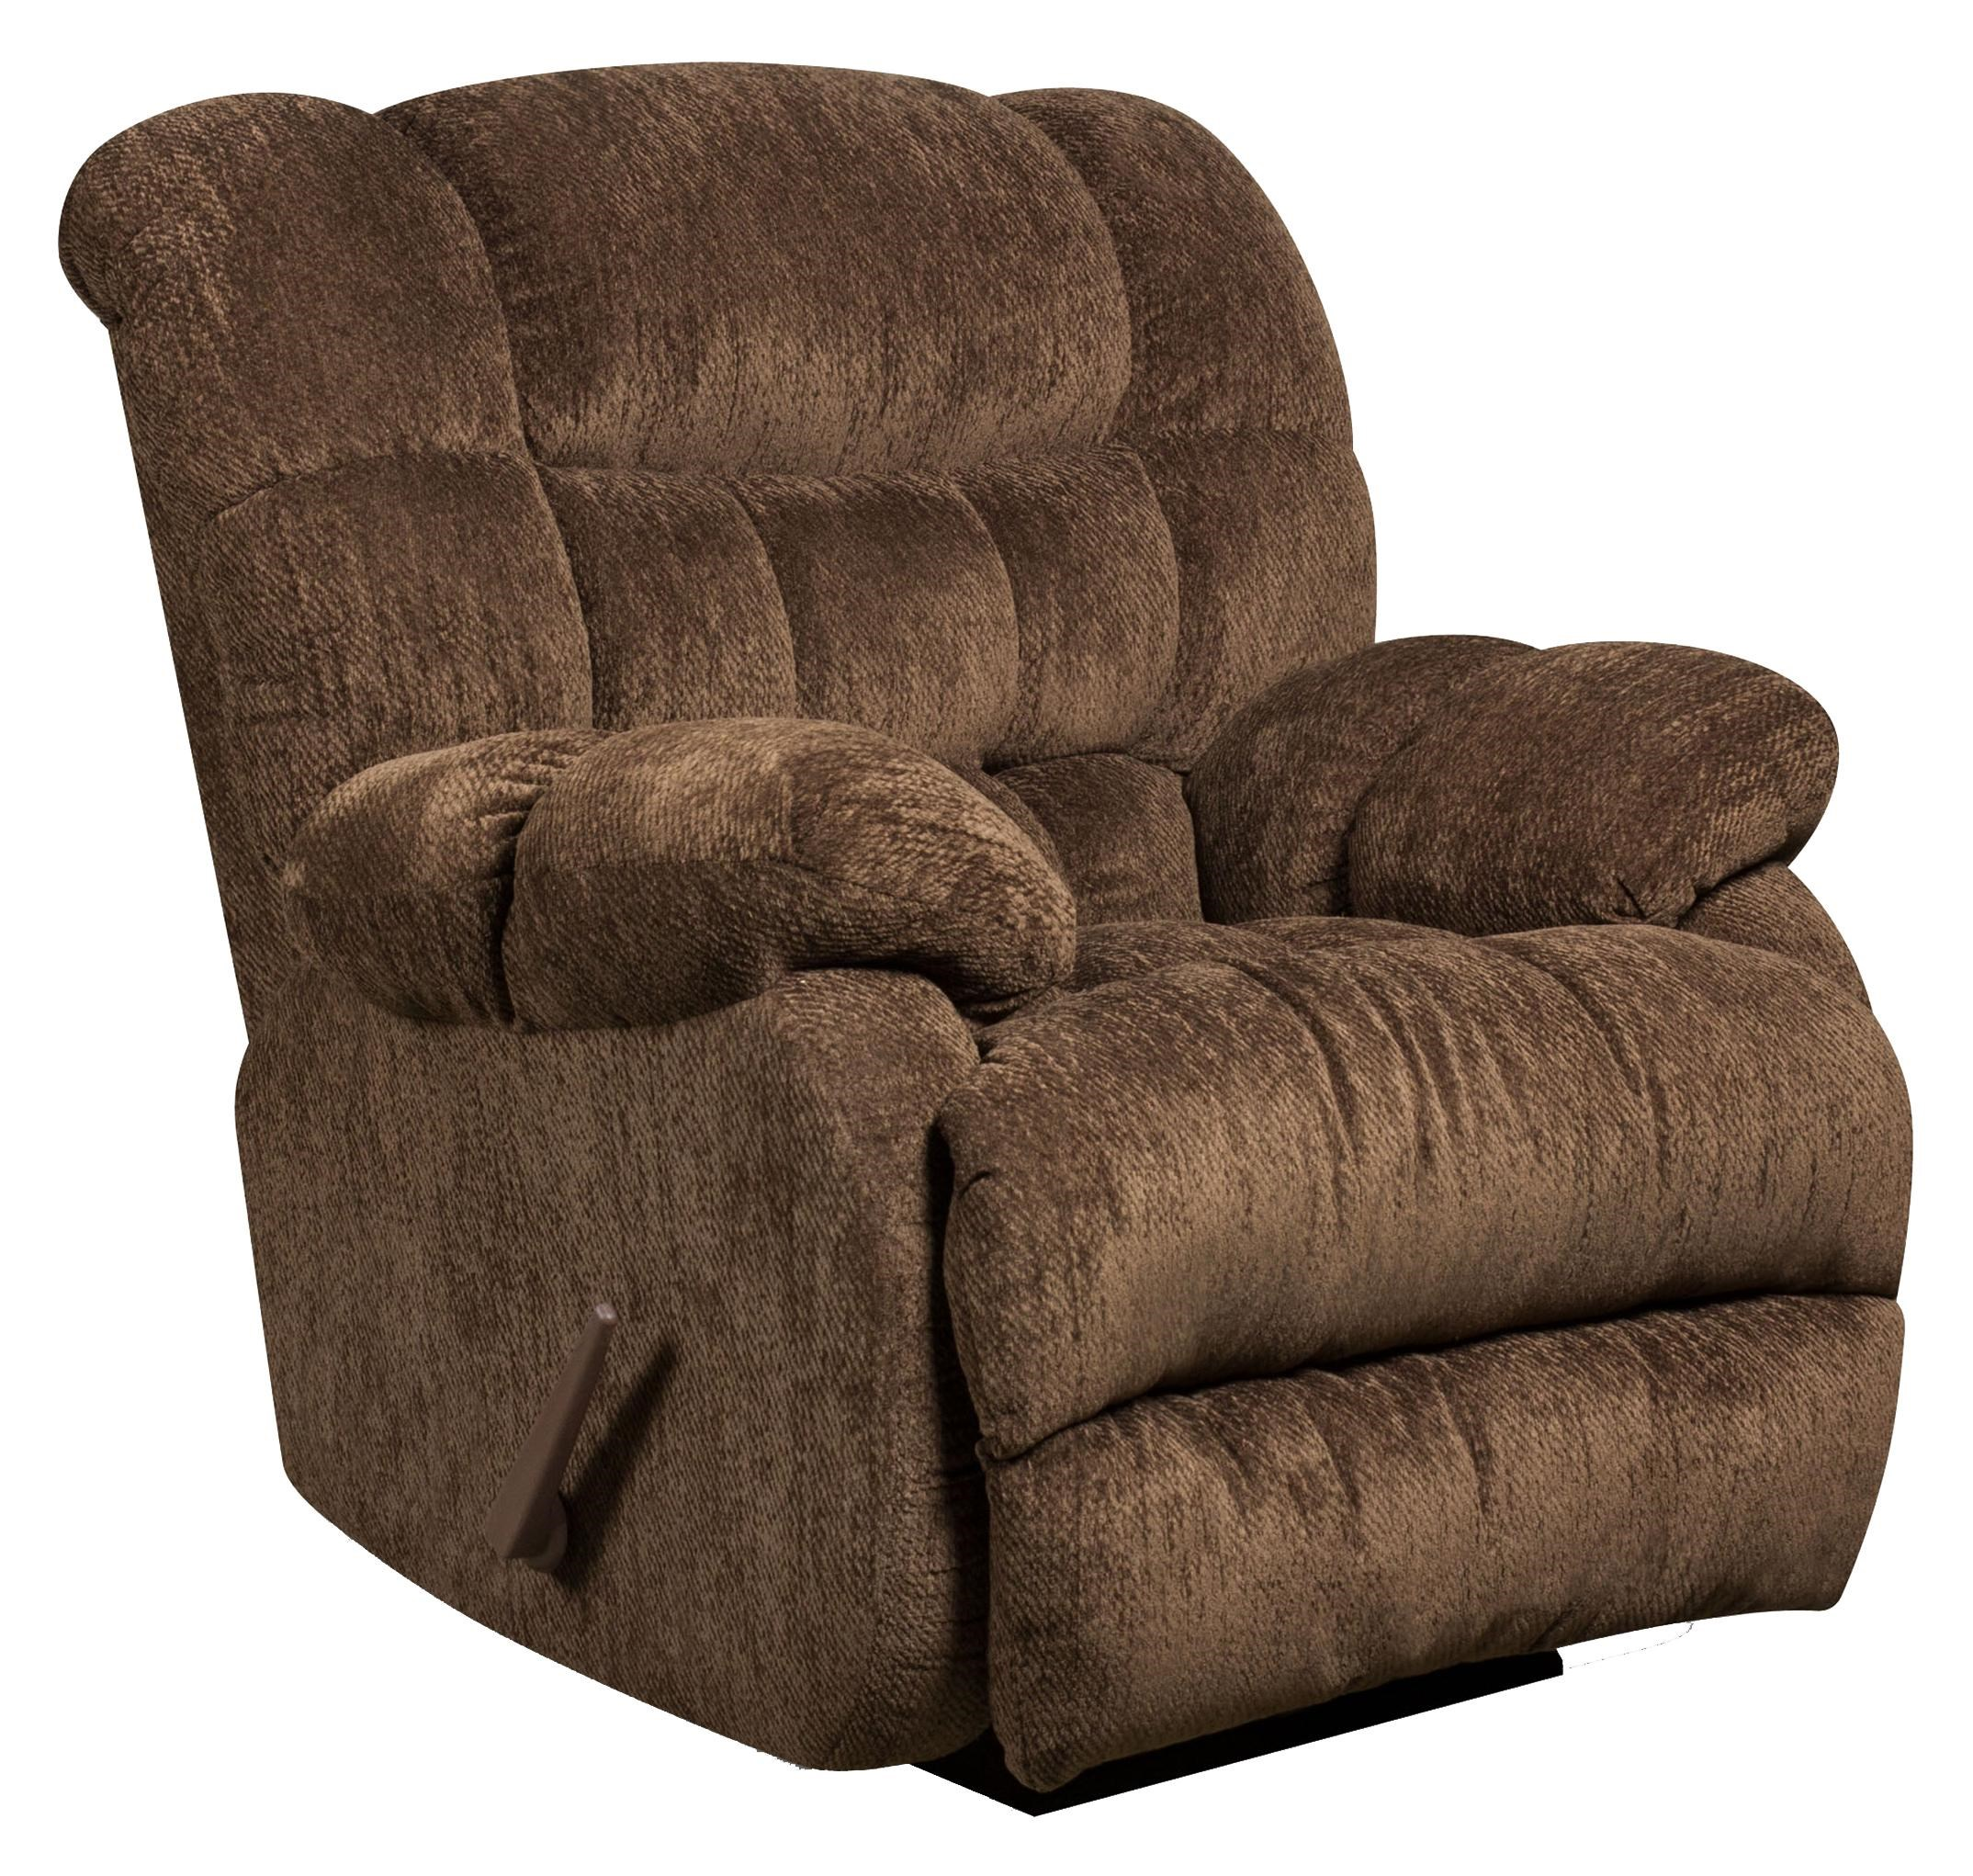 Recliner Shown May Not Represent Exact Features Indicated  sc 1 st  Miskelly Furniture & American Furniture Recliners Casual Power Recliner for Living ... islam-shia.org